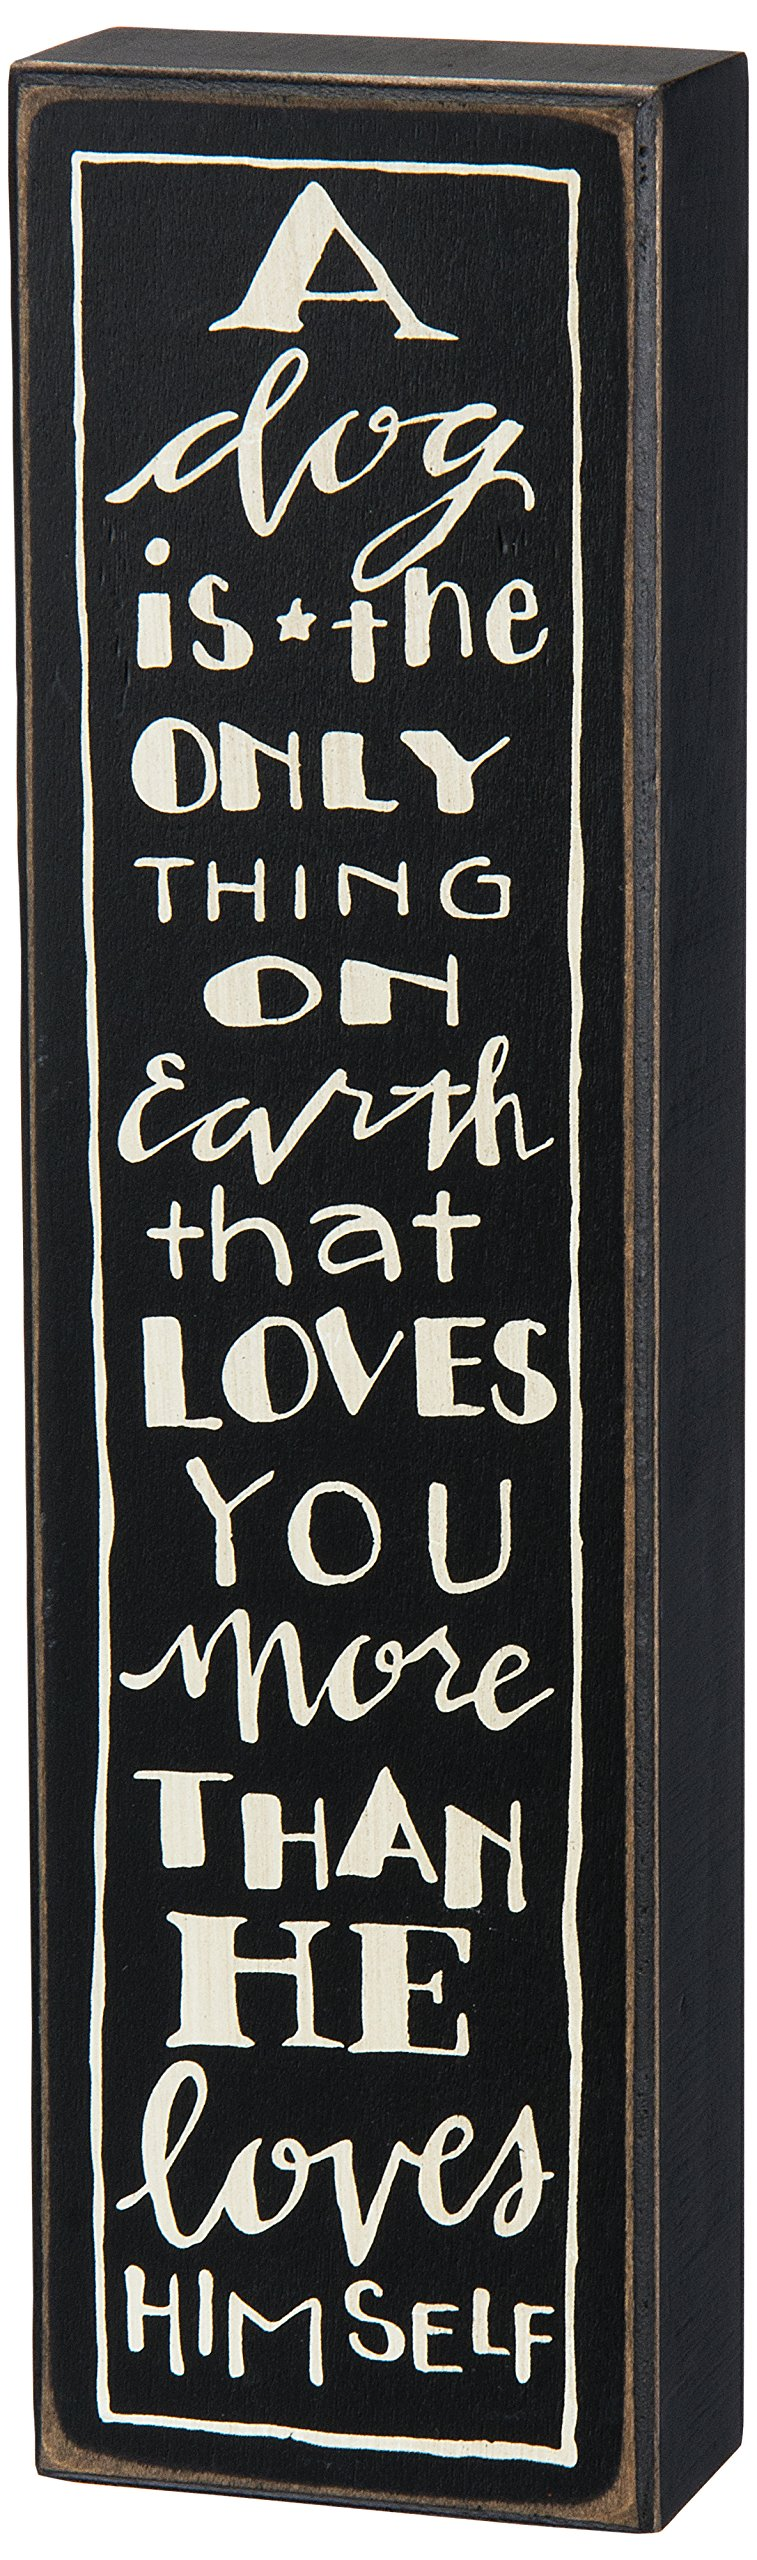 Primitives by Kathy Box Sign, 12-Inch by 3.25-Inch, A Dog is